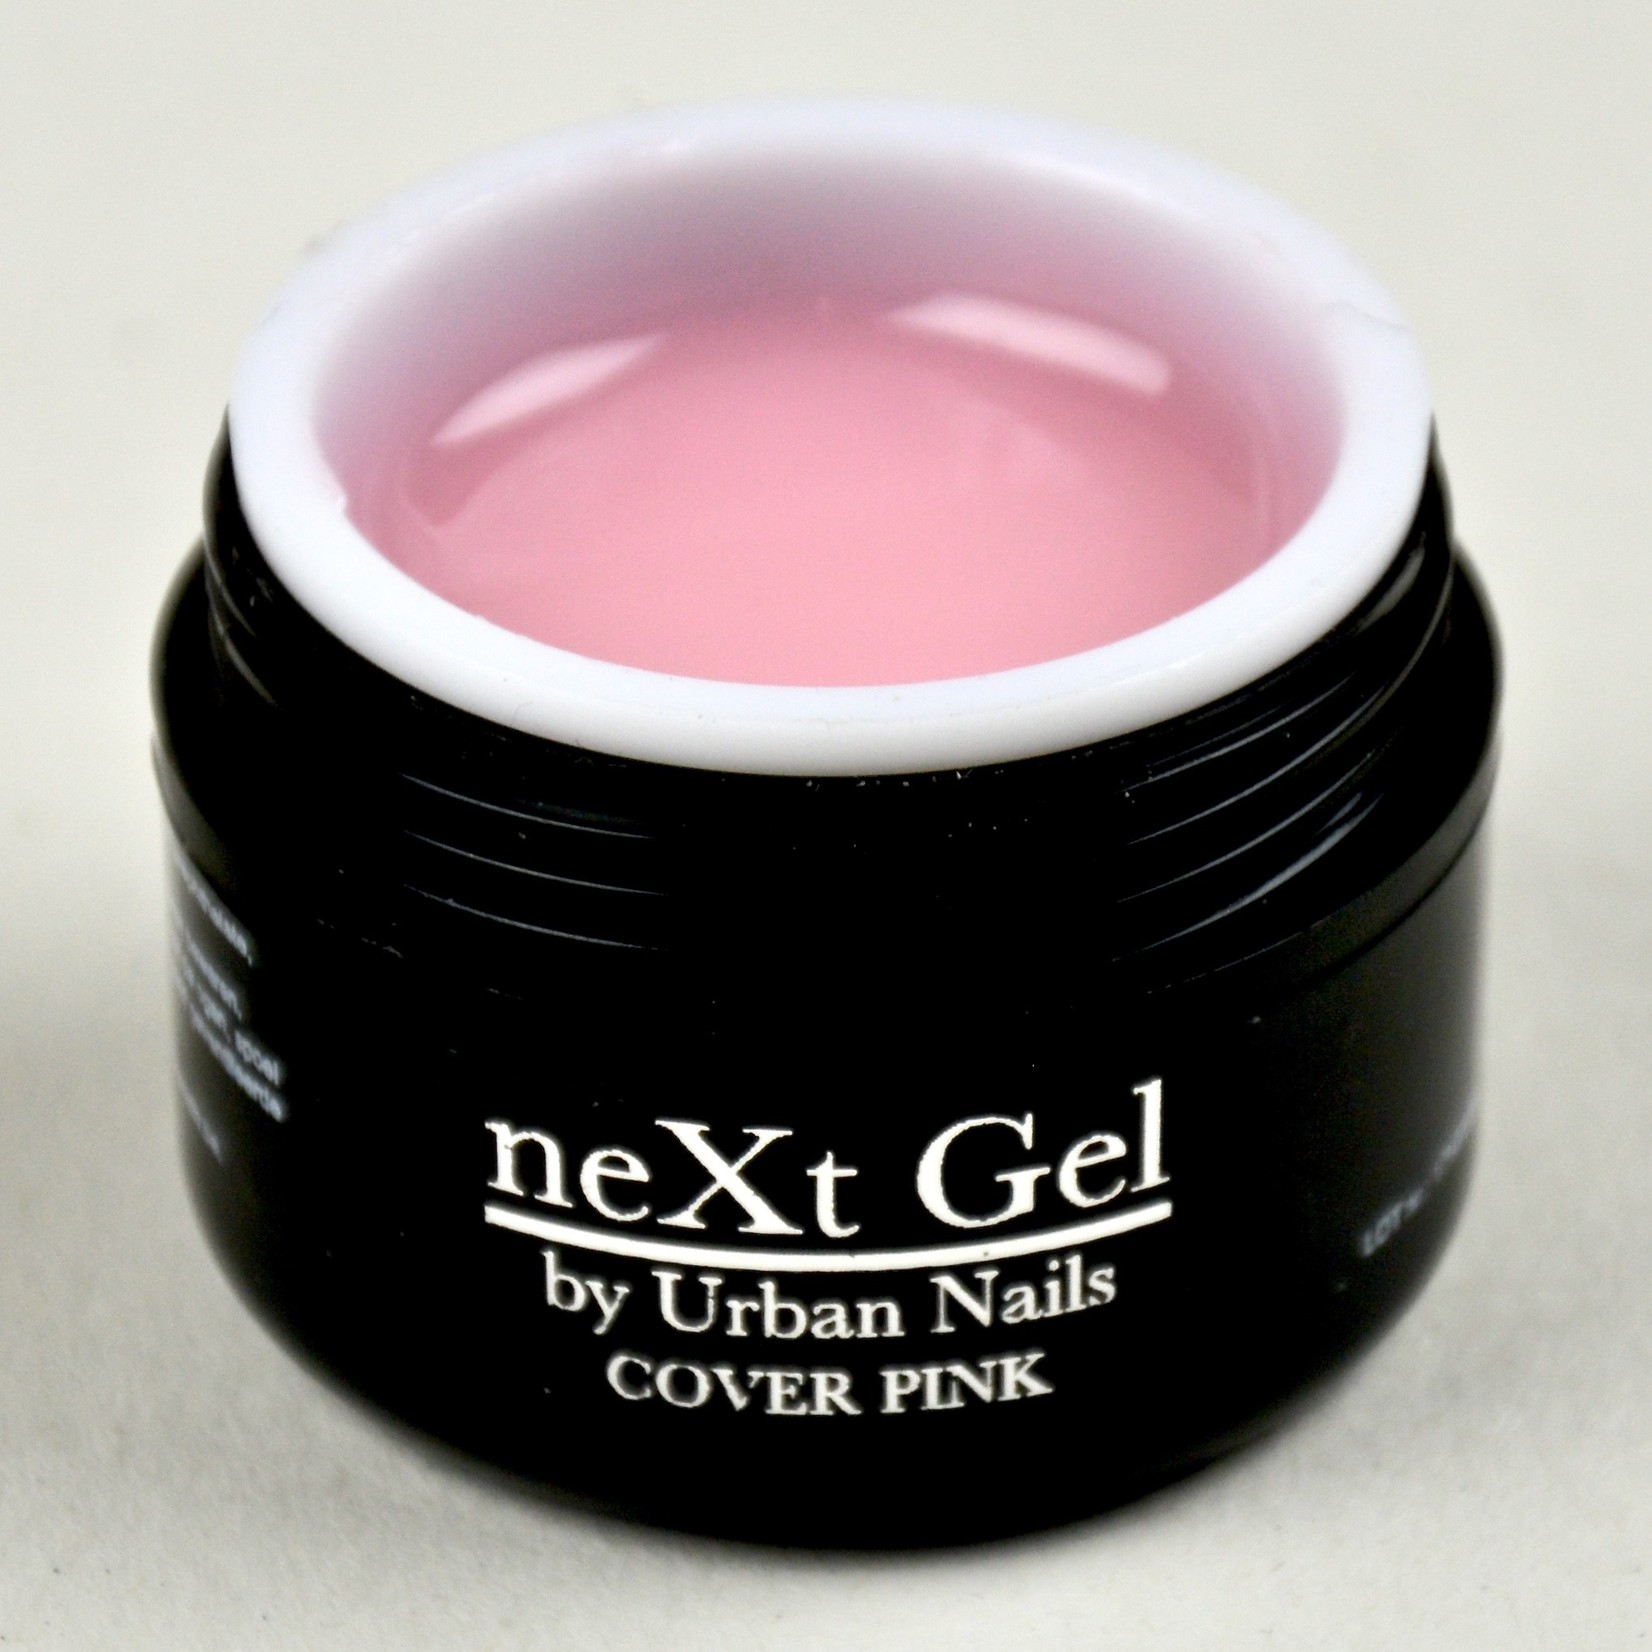 Urban Nails Next Gel Cover Pink